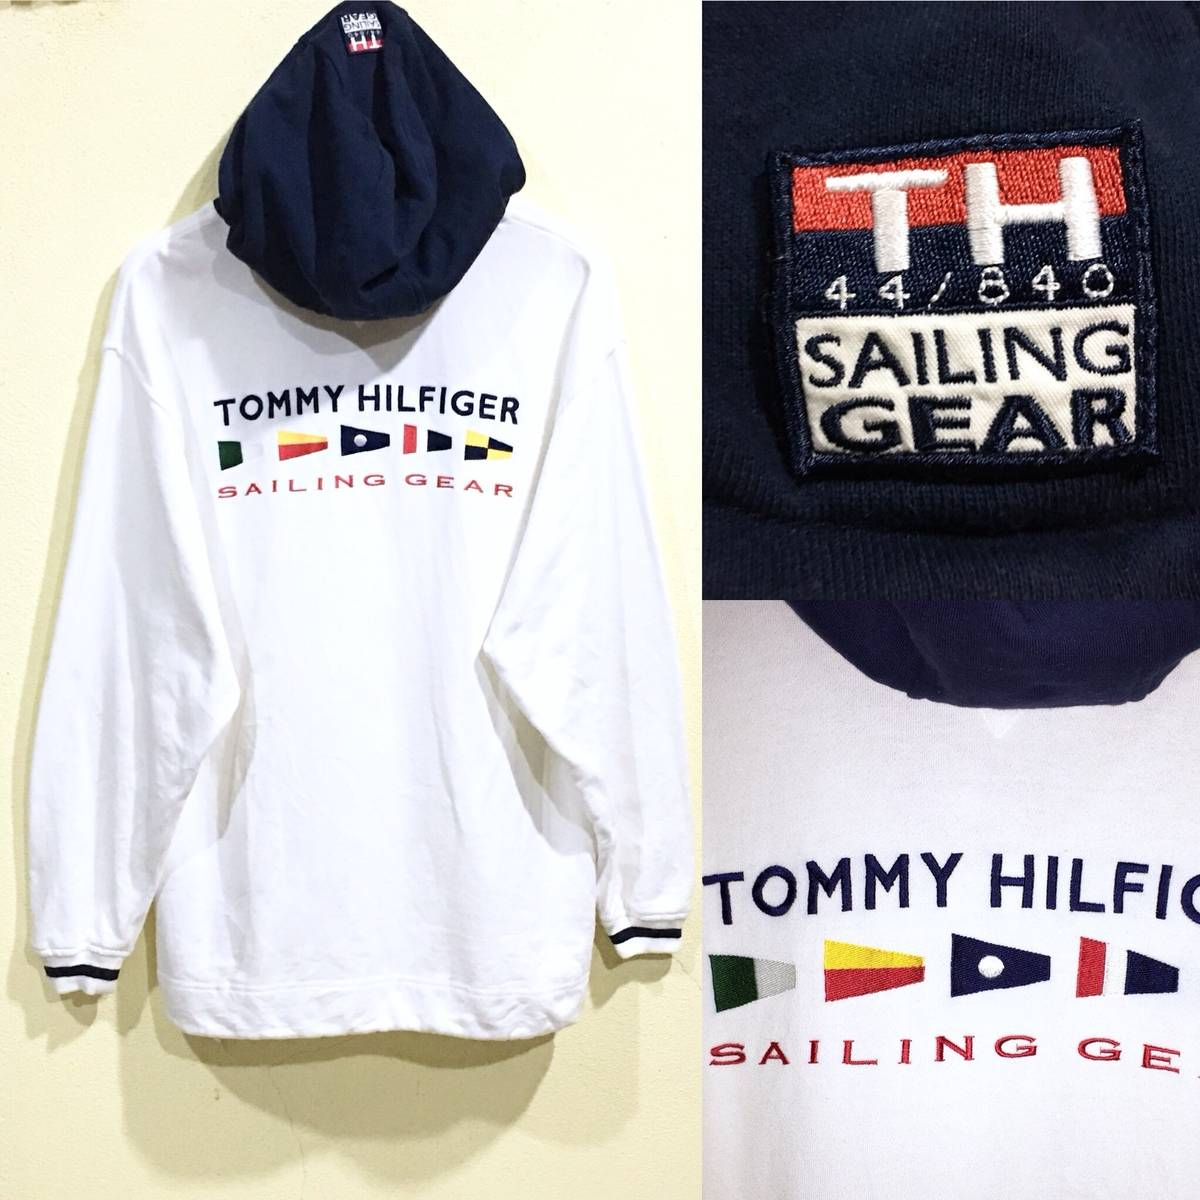 43be312f6 Tommy Hilfiger Vintage Tommy Hilfiger Hoodie Sailing Gear 44/840 Embroidery  Flag Spellout Large Size Pullover Sweater Outdoor Yacht | Grailed